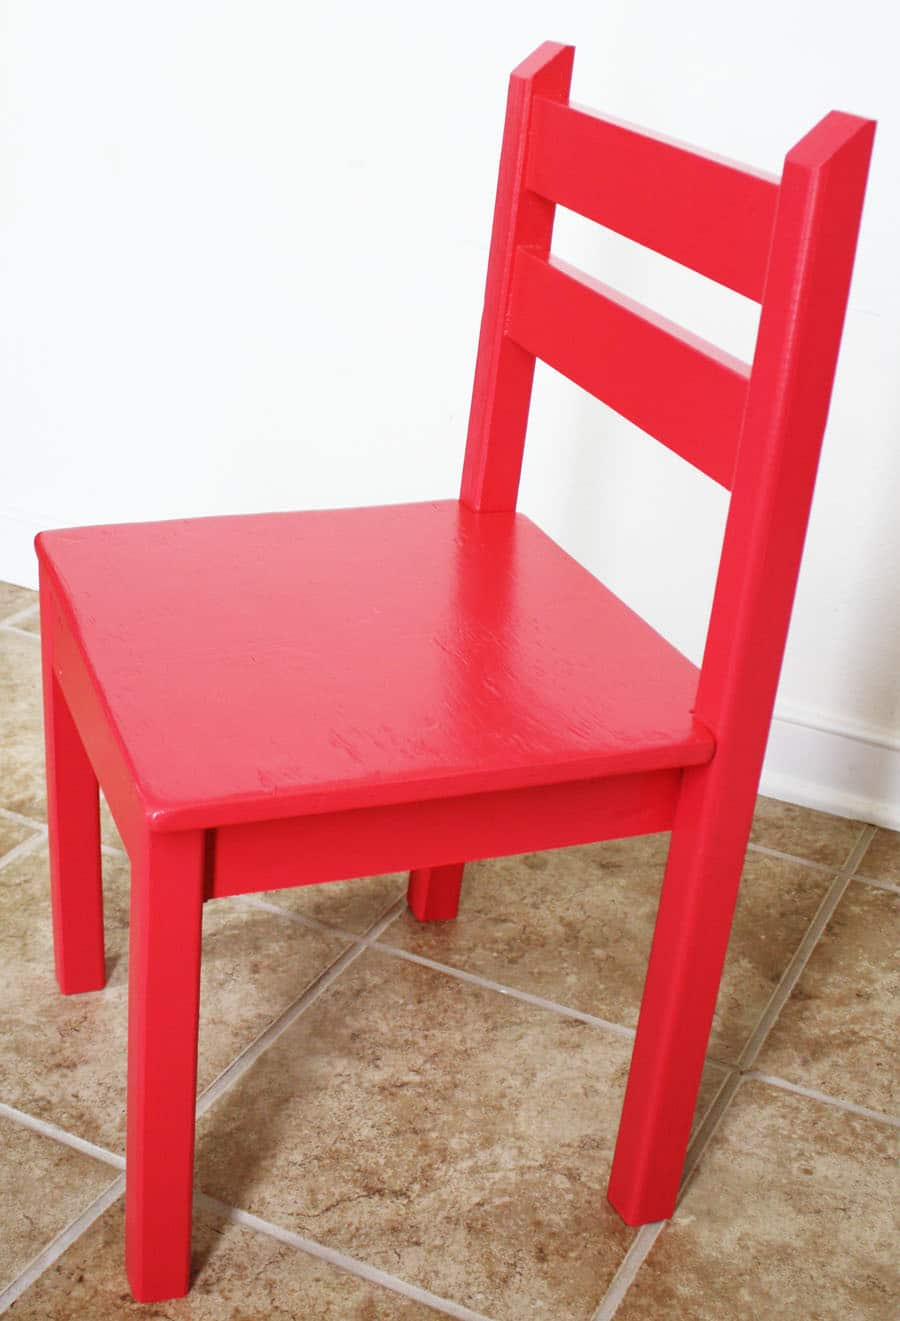 Groovy How To Build A Diy Kids Chair Evergreenethics Interior Chair Design Evergreenethicsorg